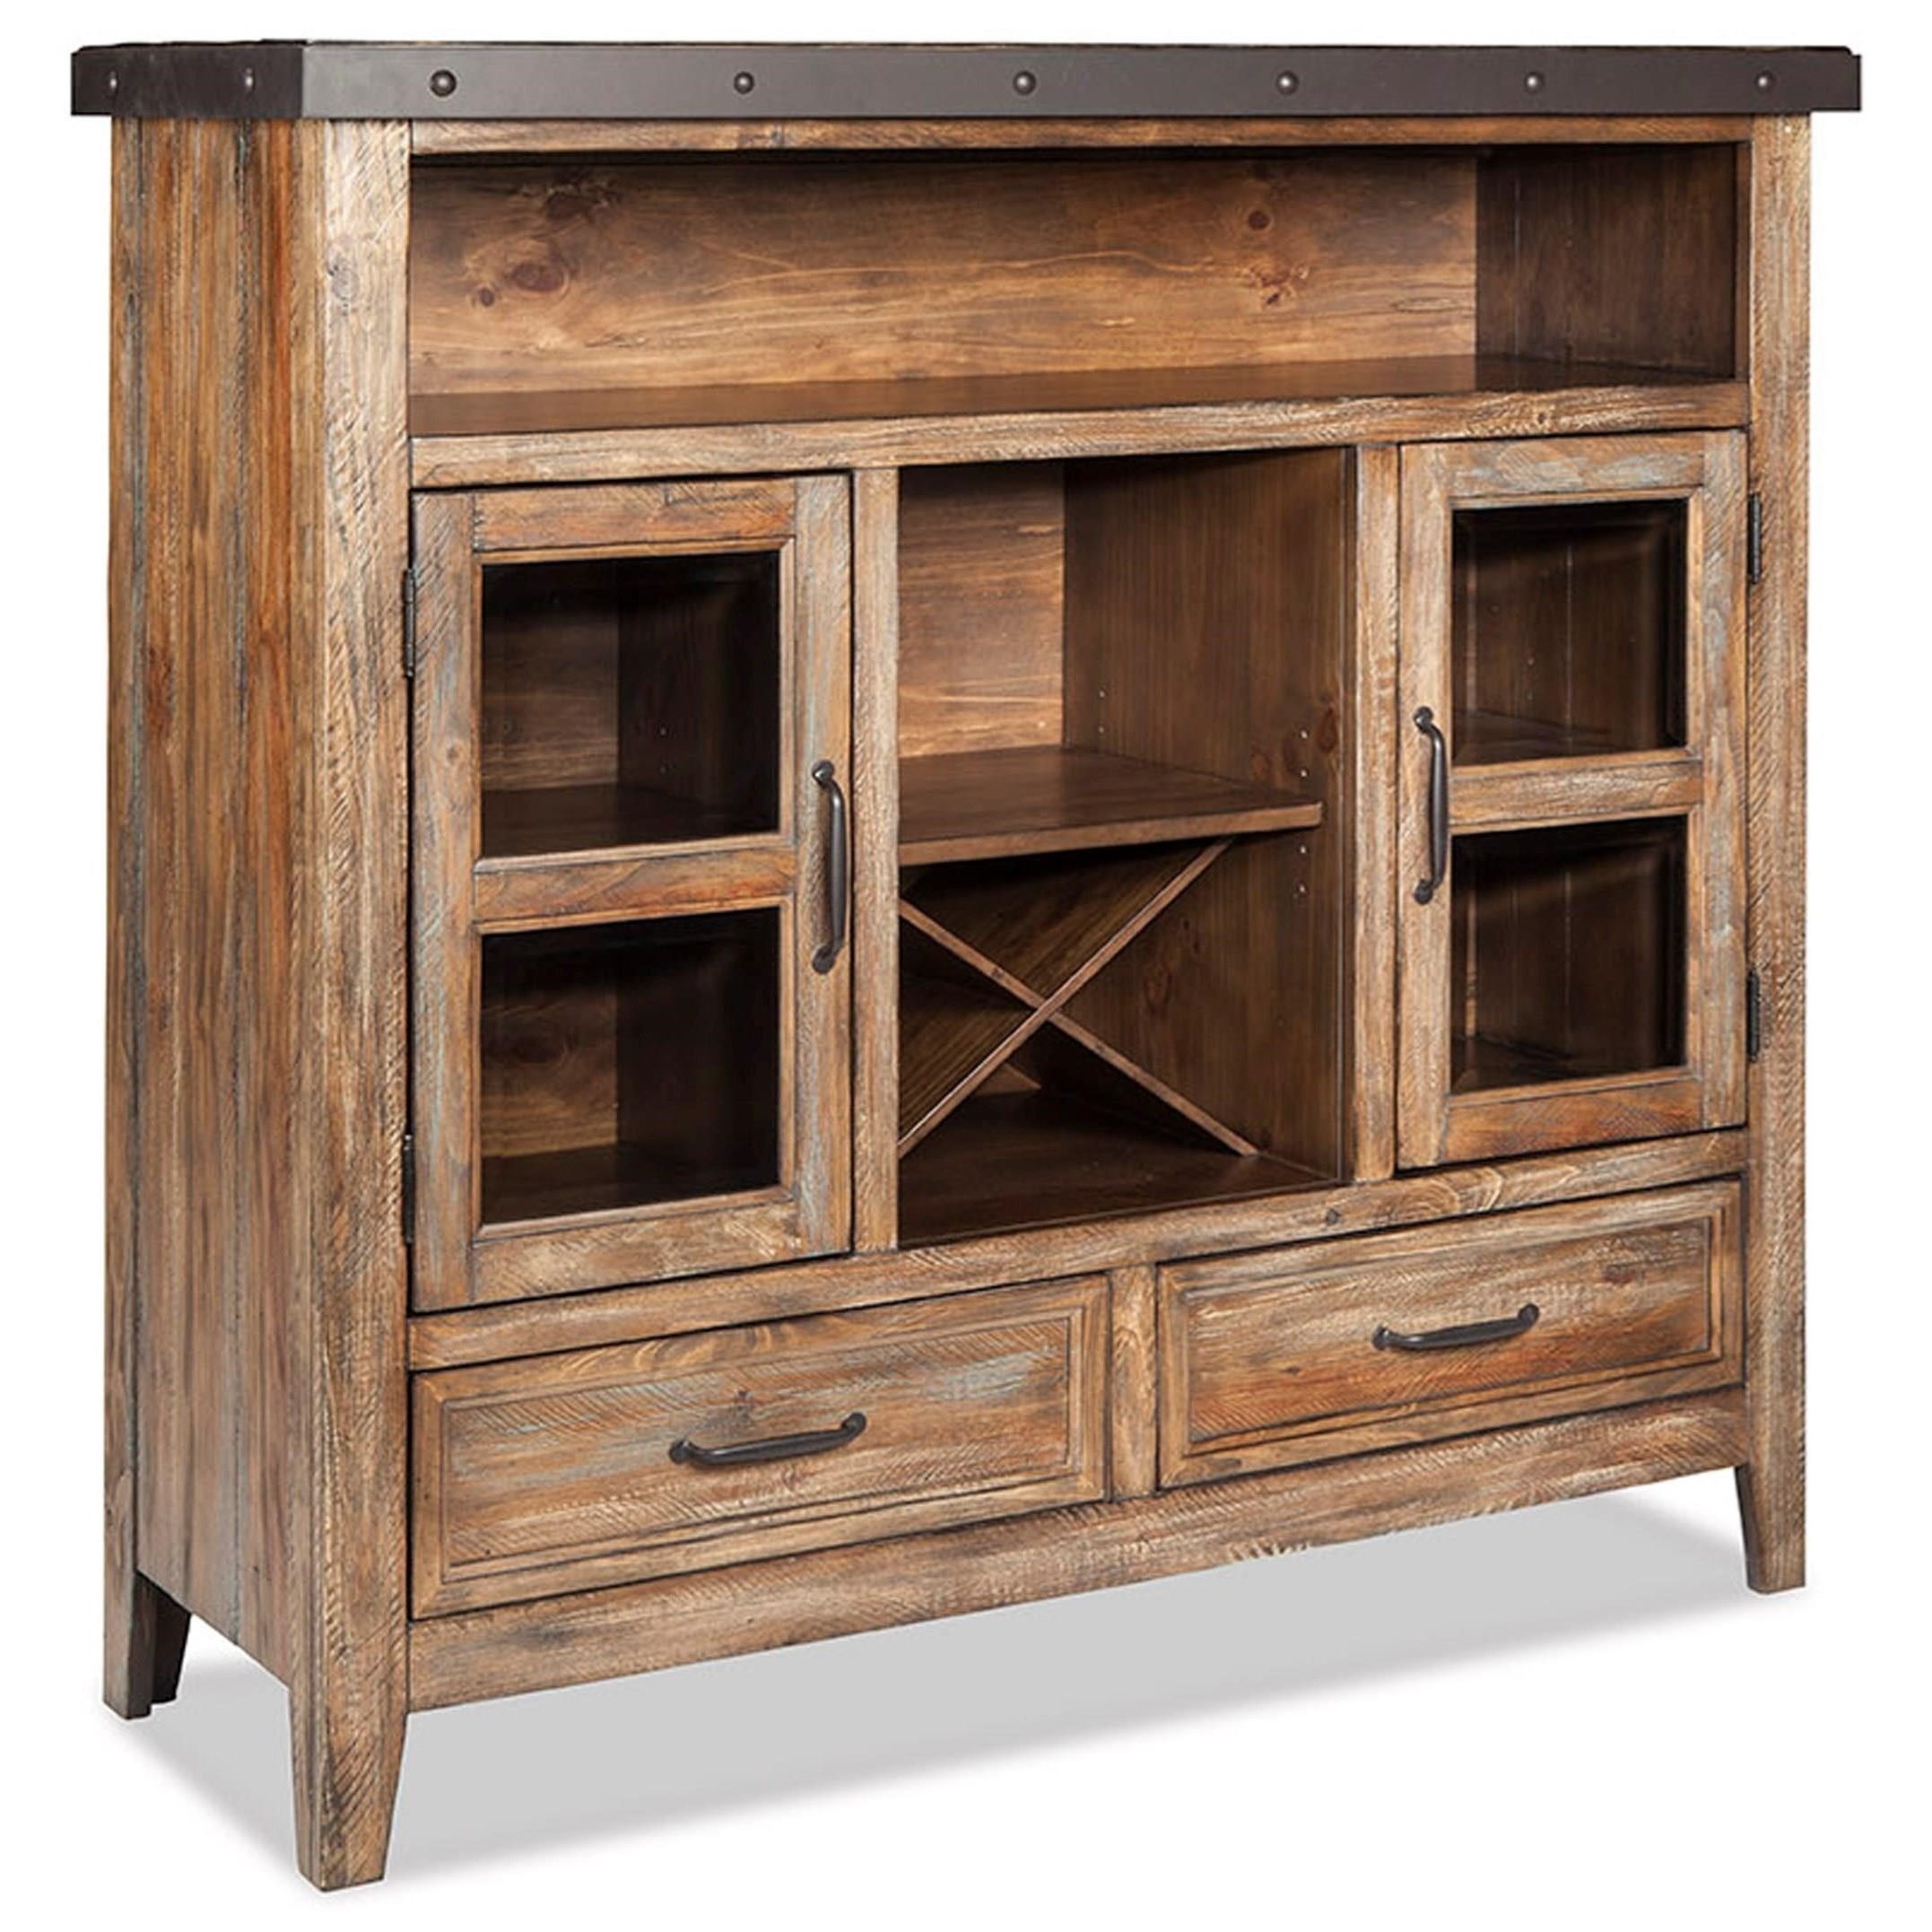 Home Furniture Distribution Center: Intercon Taos Rustic Buffet With Removable Bottle Storage